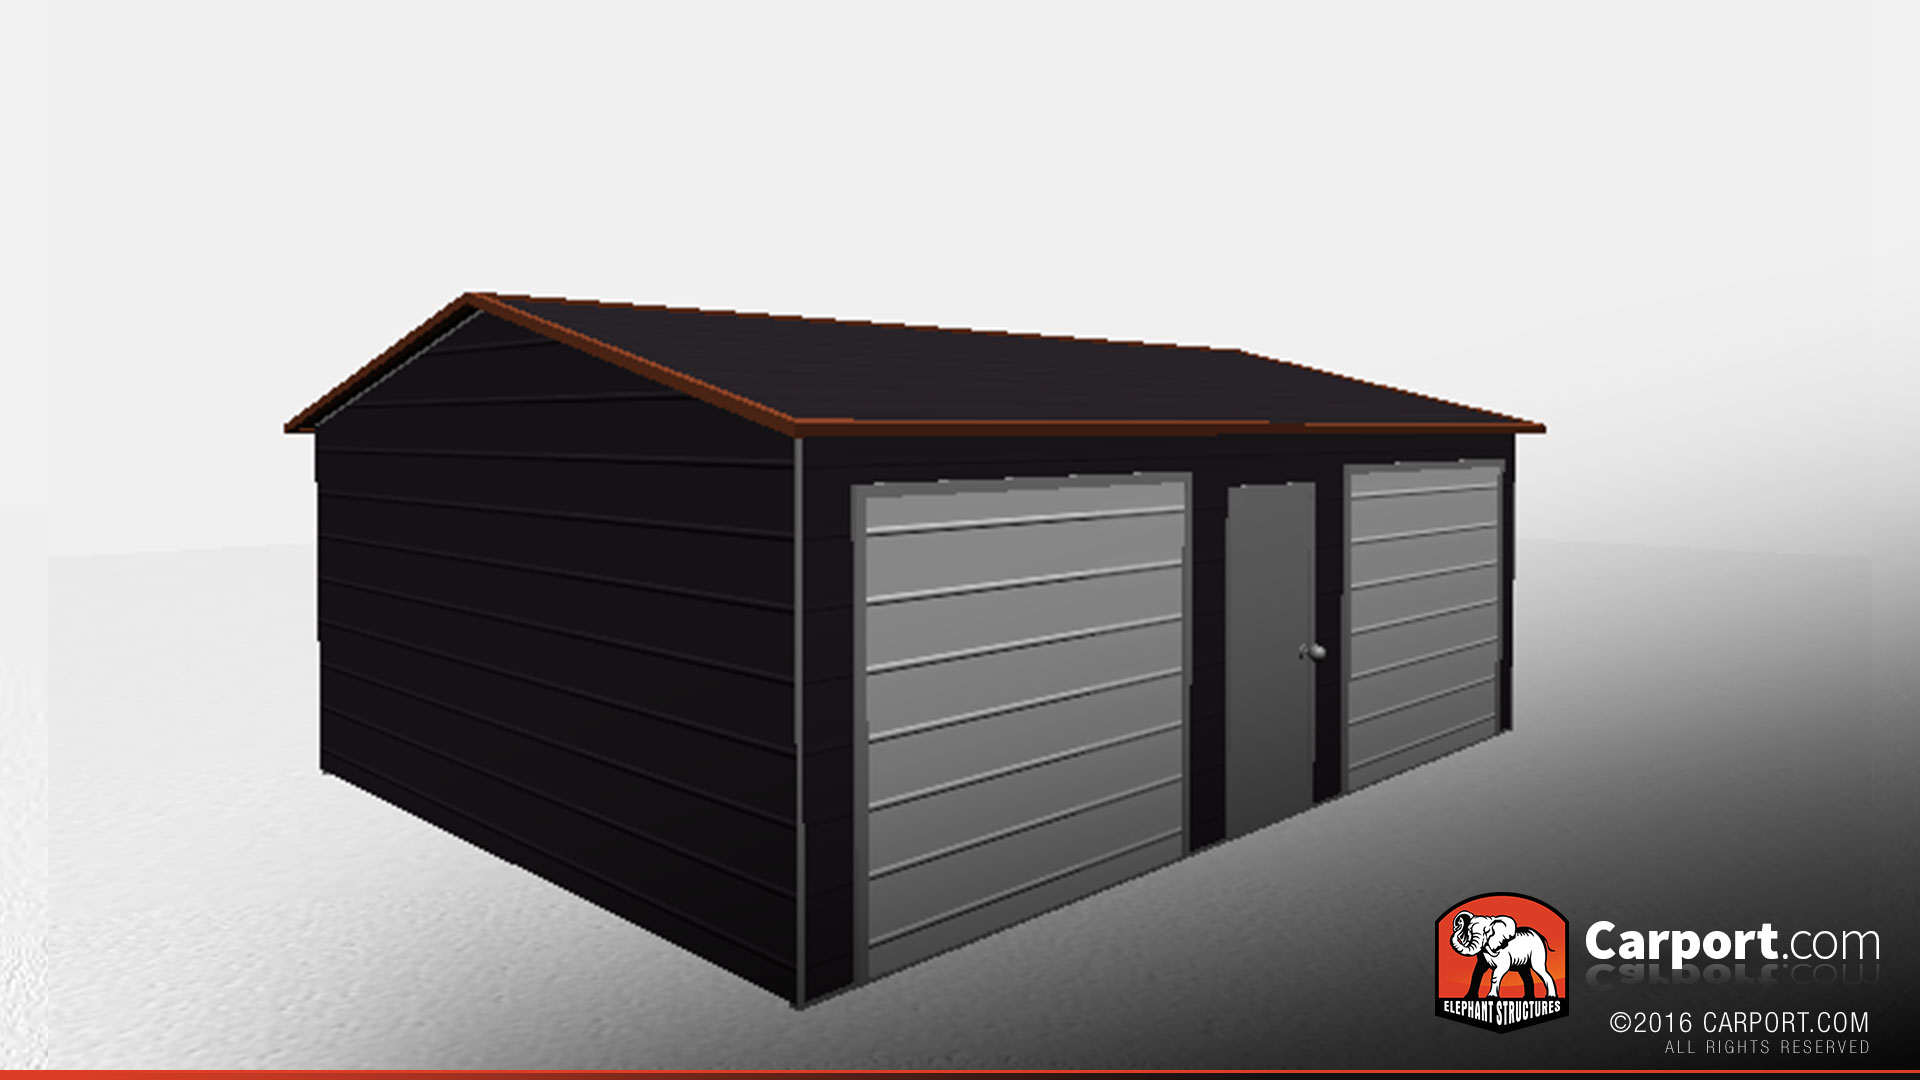 18 X 24 Two Car Metal Garage With Boxed Eave Roof